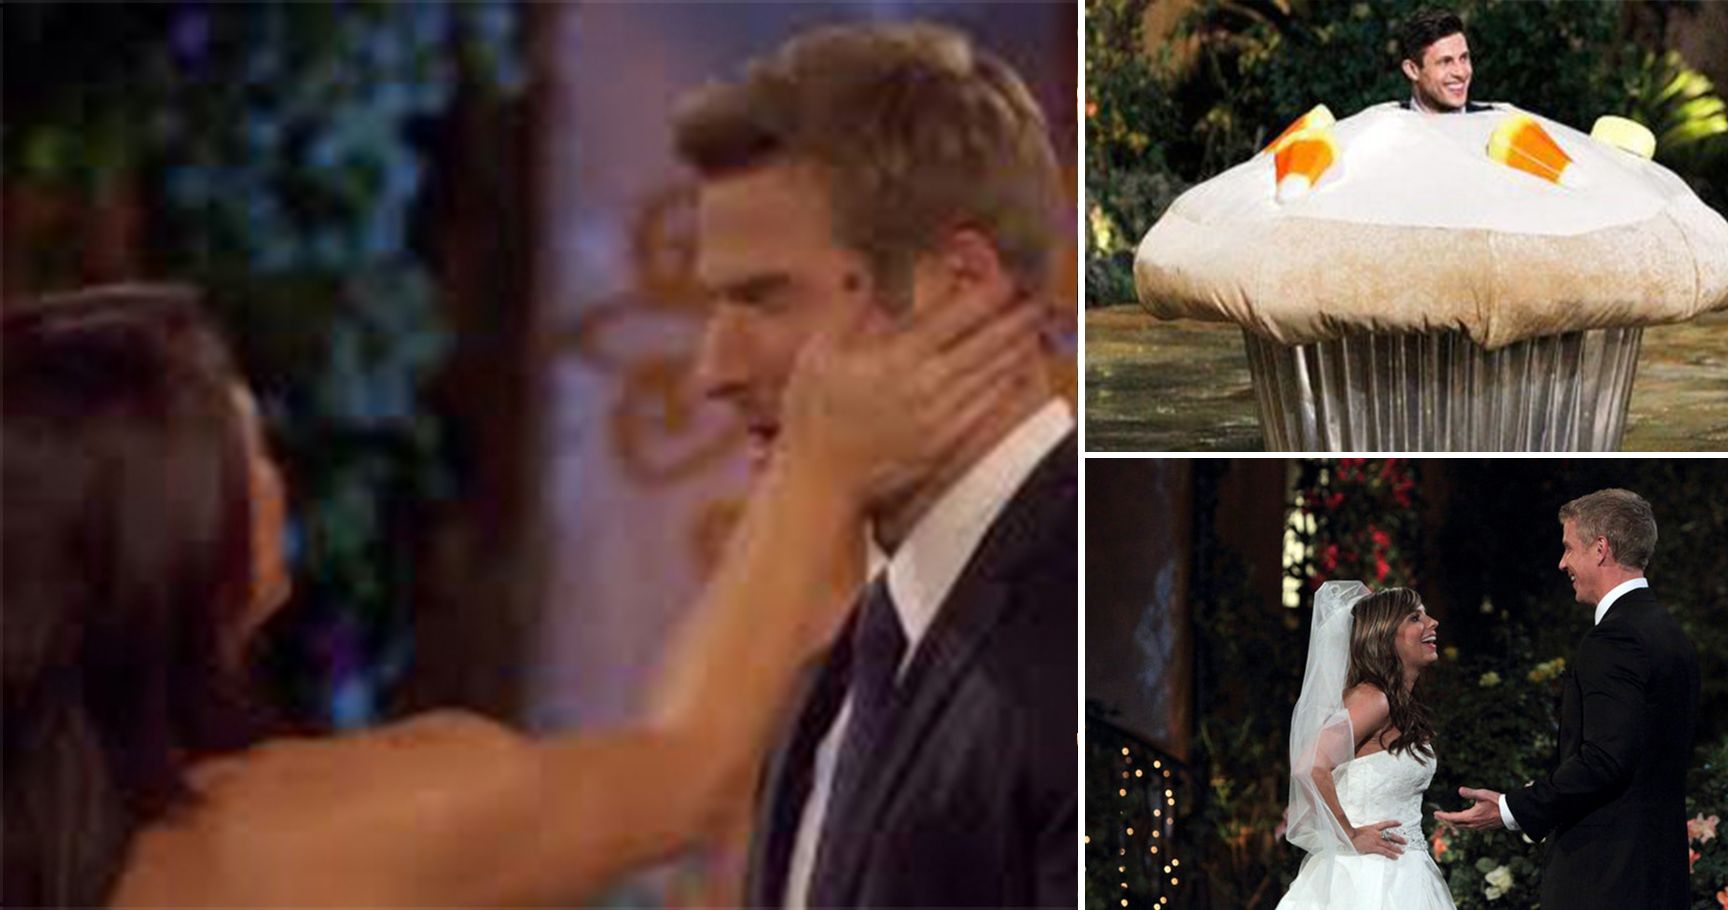 15 Of The Most Outrageous Bachelor/Bachelorette Limo Exits Of All Time